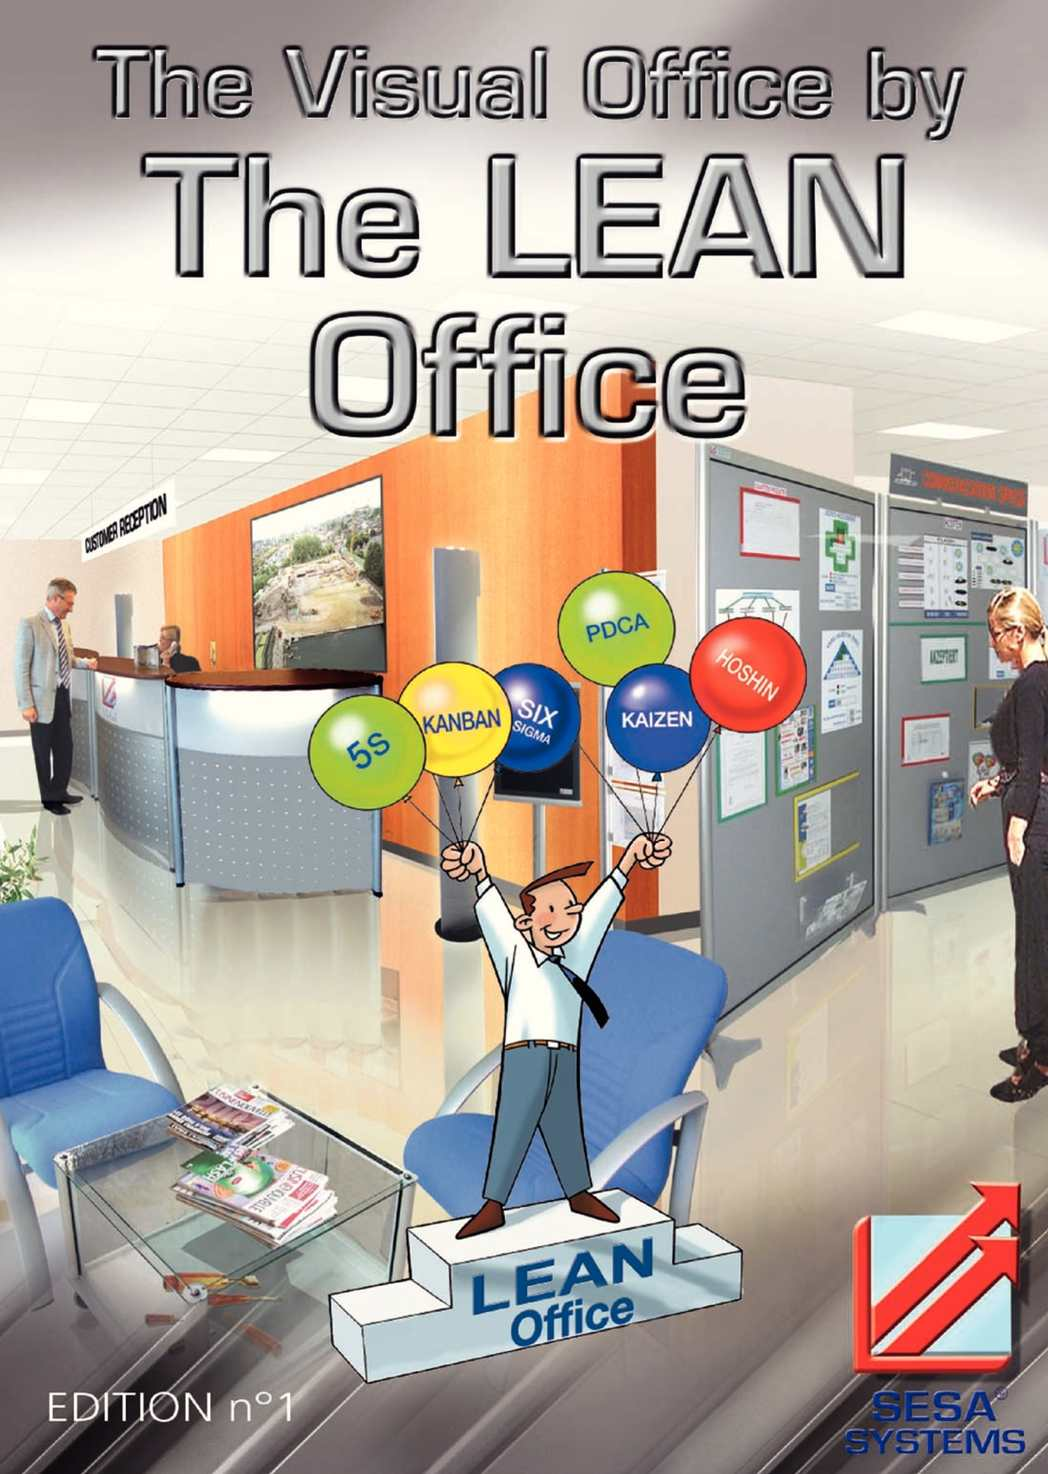 Calamo  Sesa Systems  Lean Office